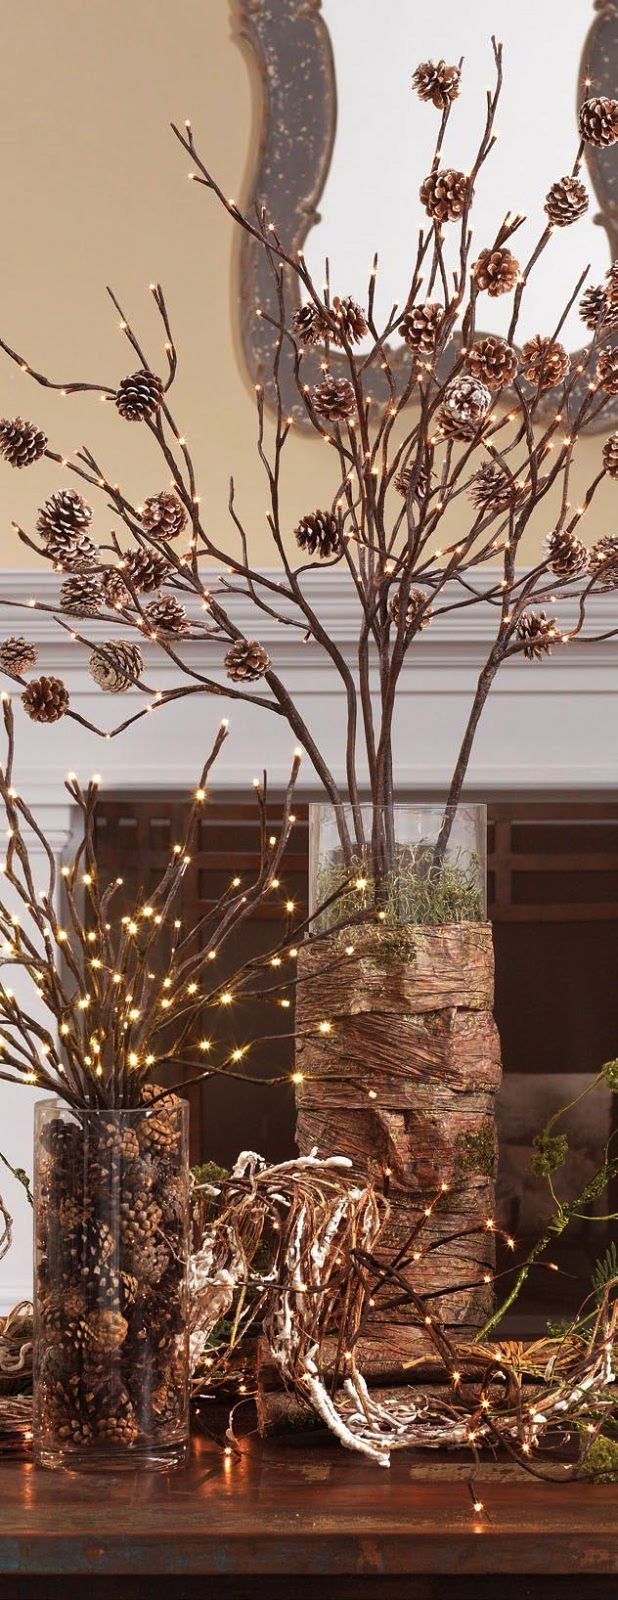 Lots of holiday idead on site---Lit Branches in Vases